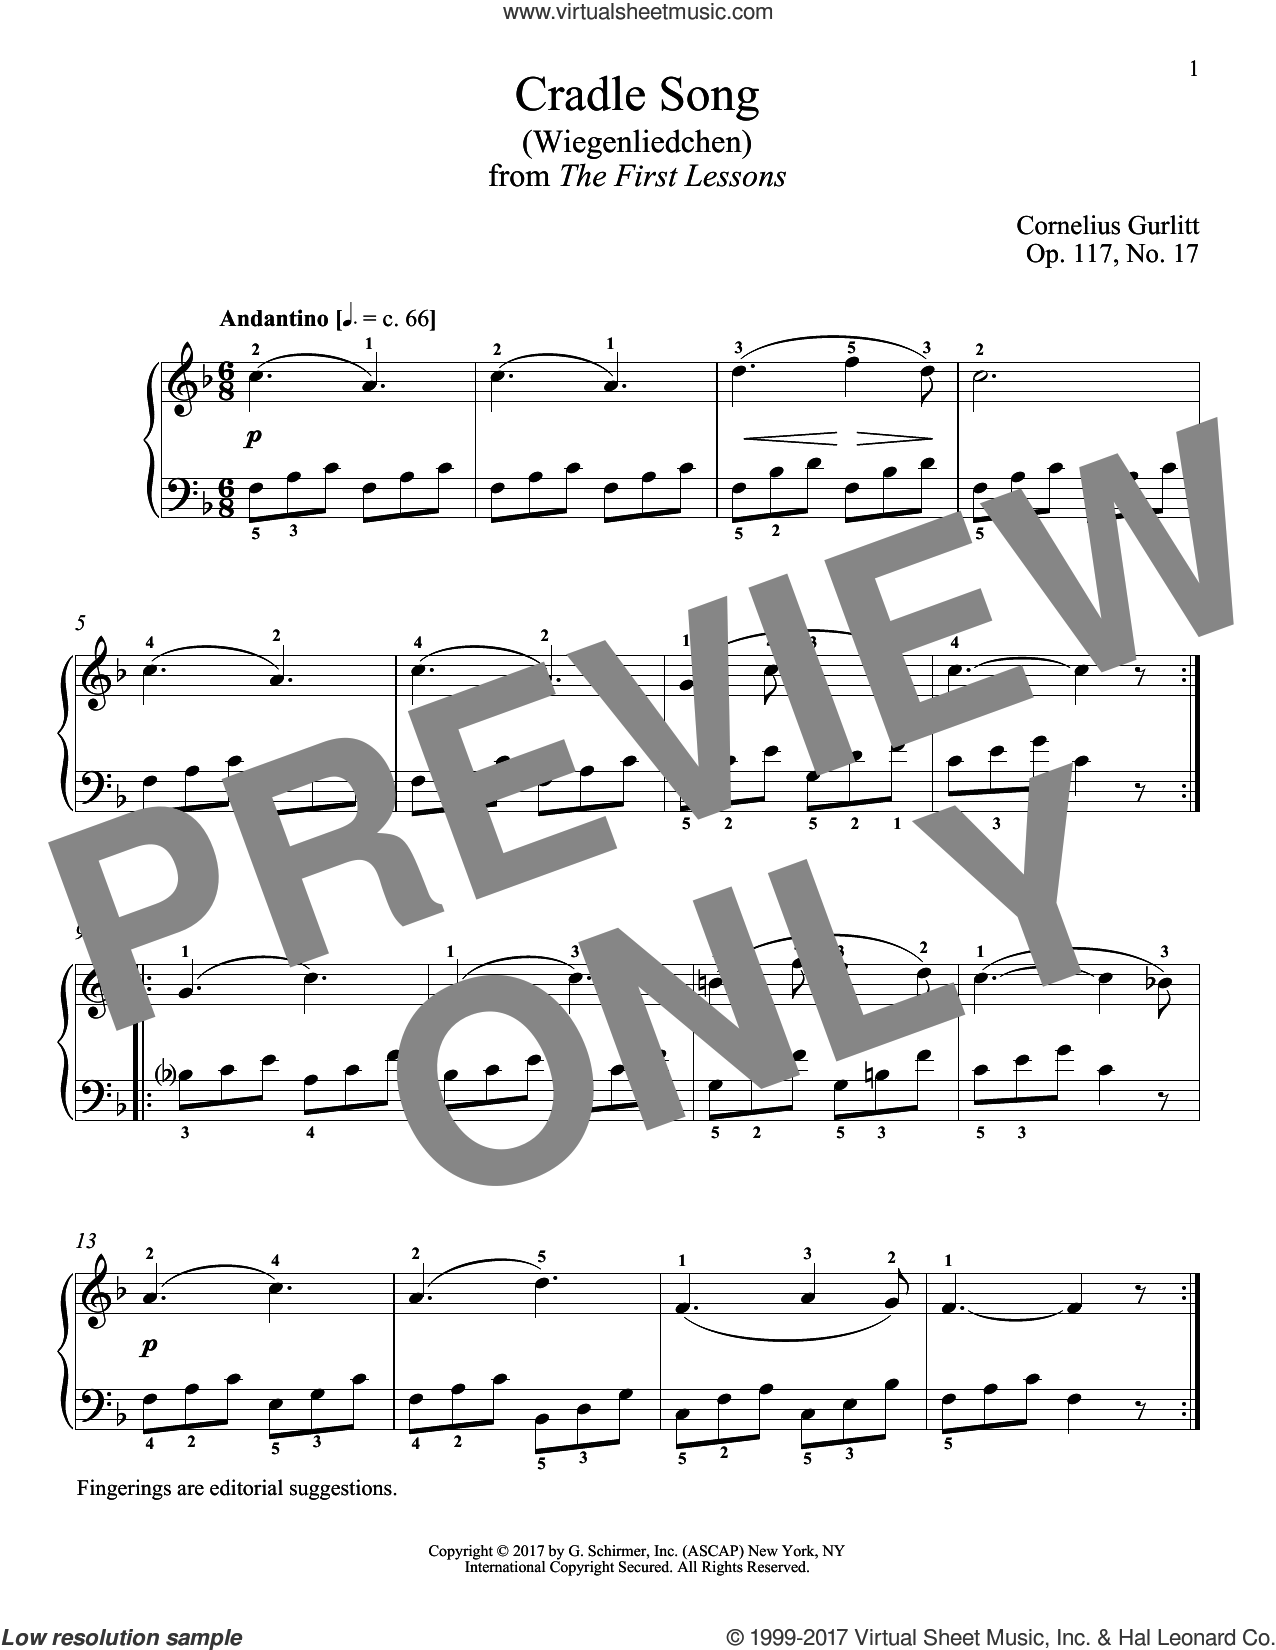 Cradle Song (Wiegenliedchen), Op. 117, No. 17 sheet music for piano solo by Cornelius Gurlitt and Richard Walters, classical score, intermediate skill level